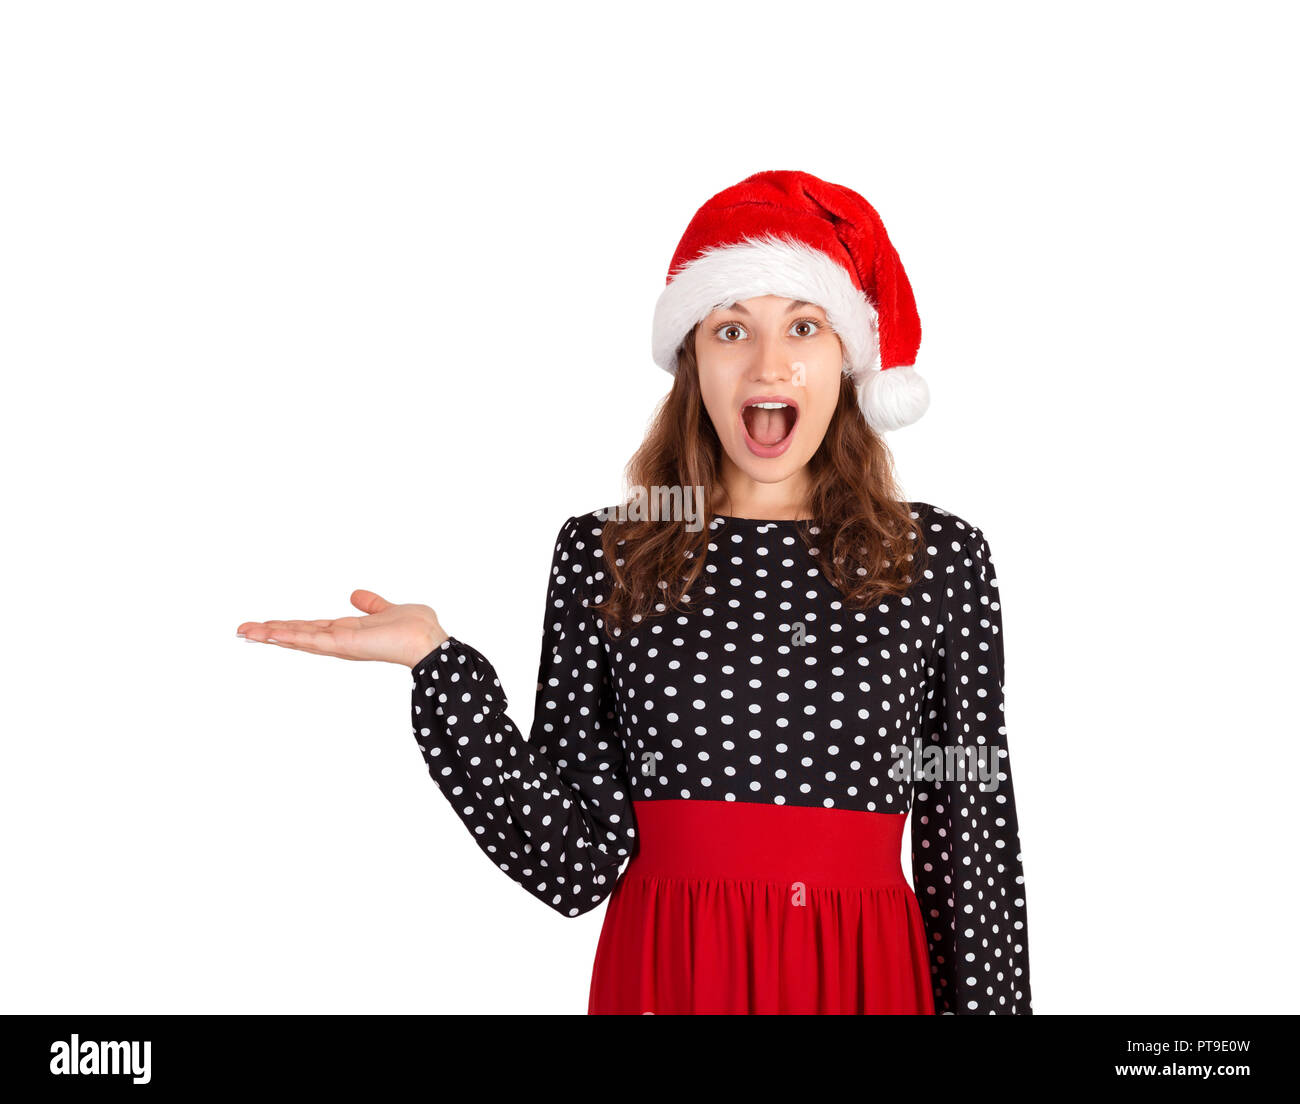 c63cce3682056 Girl in dress surprise recommend you to use this copy space. emotional girl  in santa